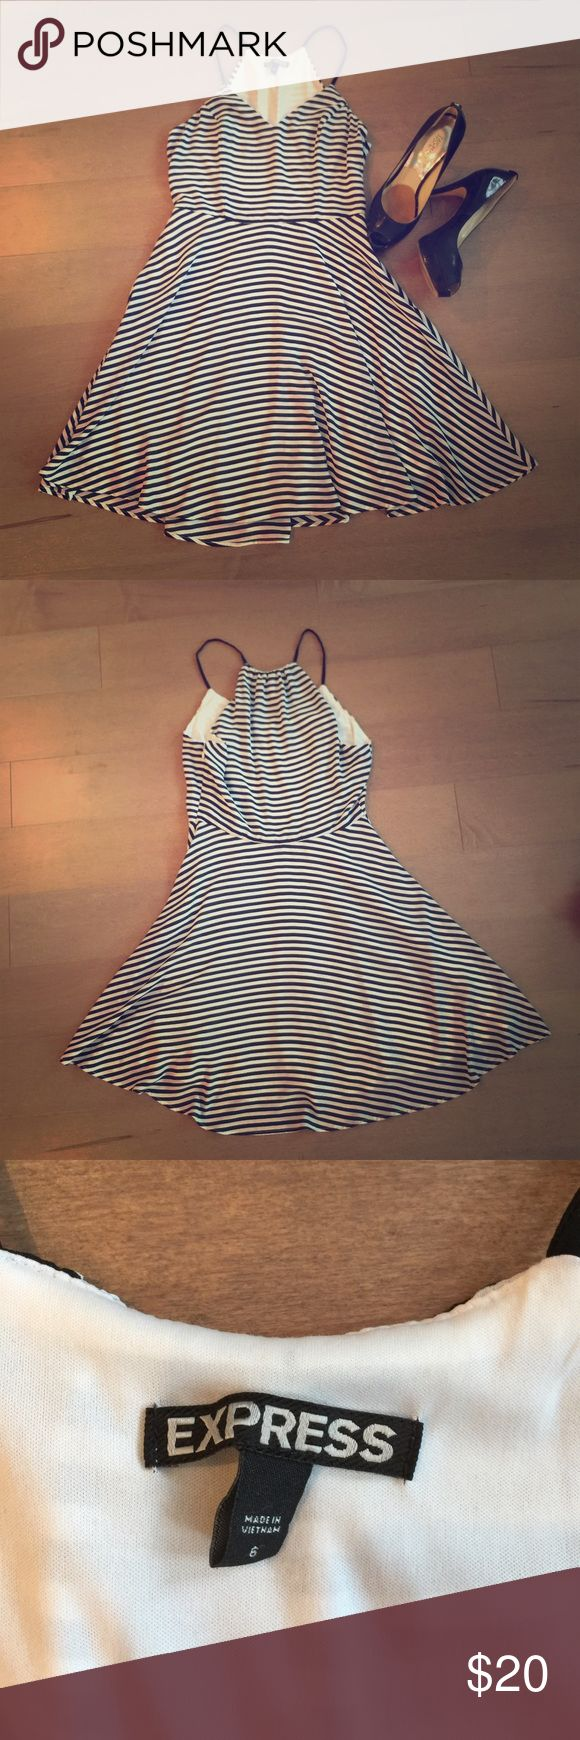 Express black and white striped party dress Fit and flare. Slight V-neck, thin straps, side zip, thin black and white stripes. Express brand. Polyester Express Dresses Midi